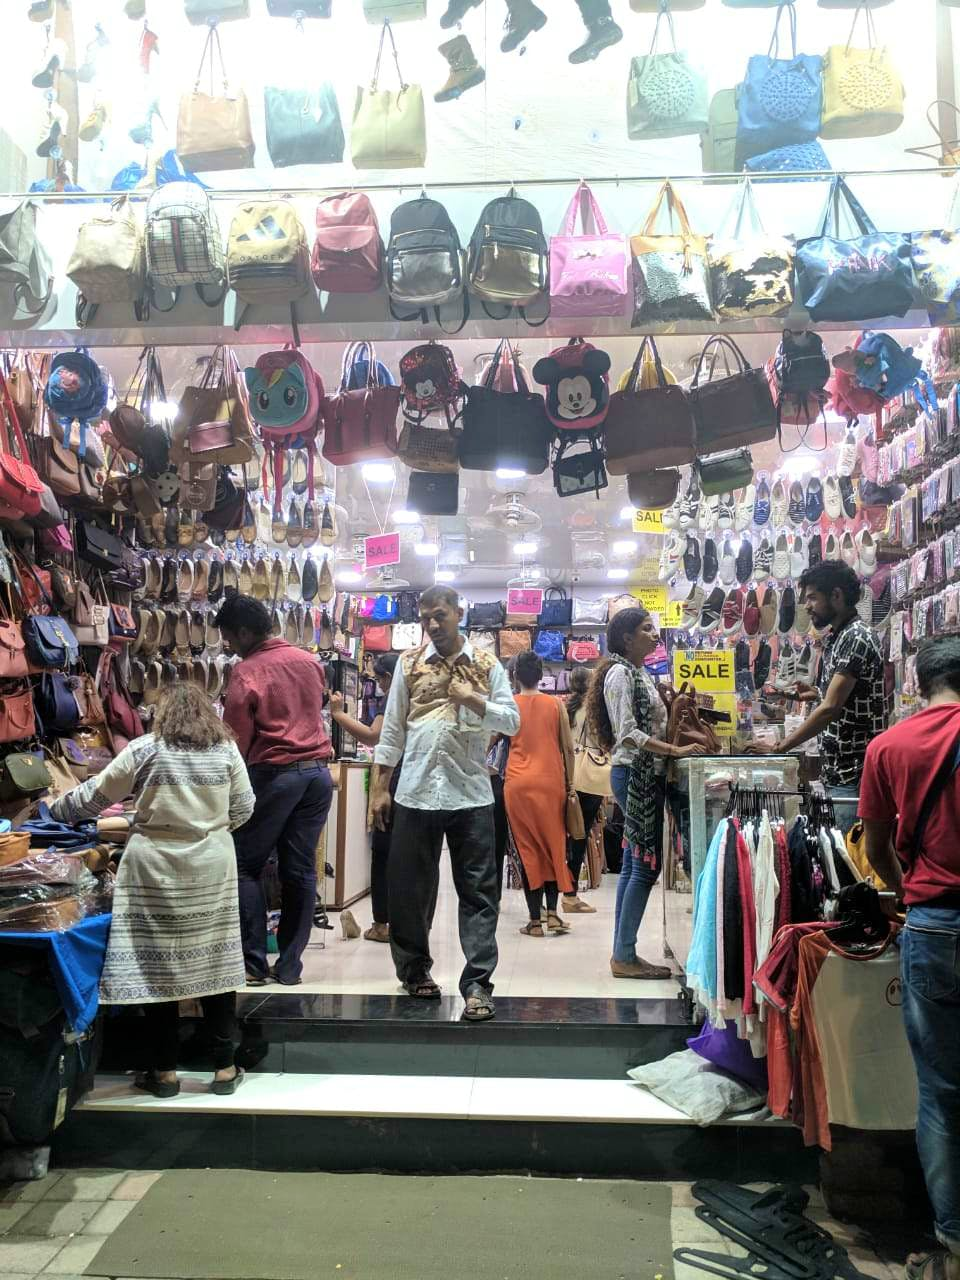 Hill Road Shopping Place in Mumbai